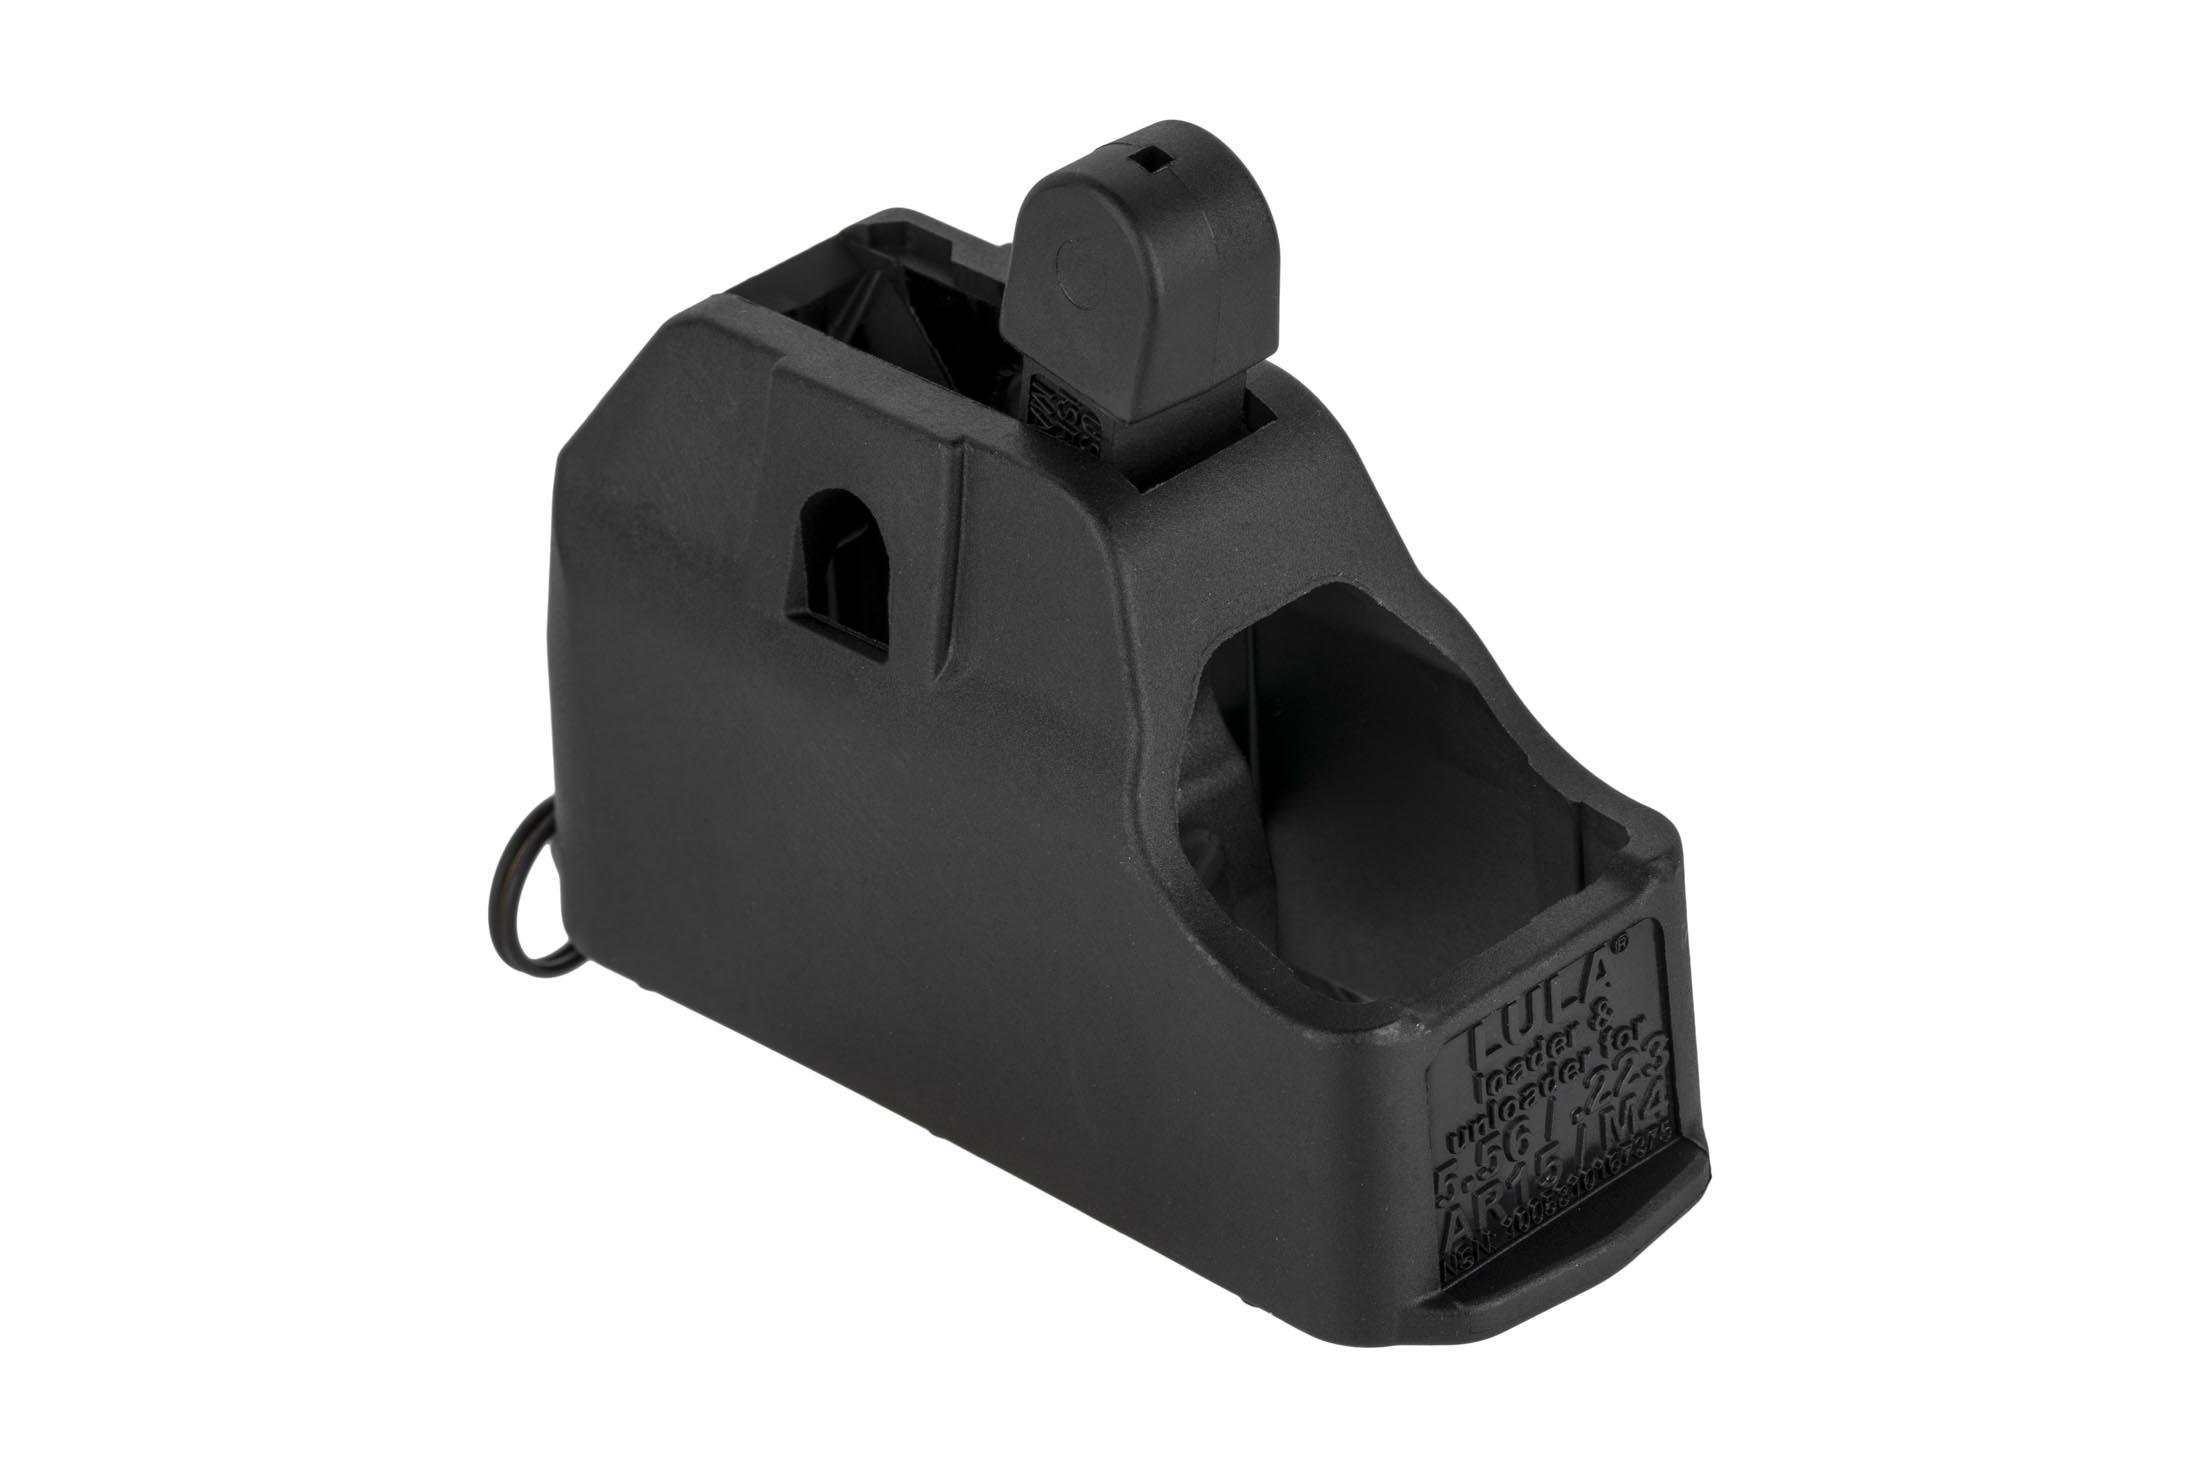 MagLula Ltd AR-15 / M4 loader and unloader is lightweight and compact to fit in any range bag.